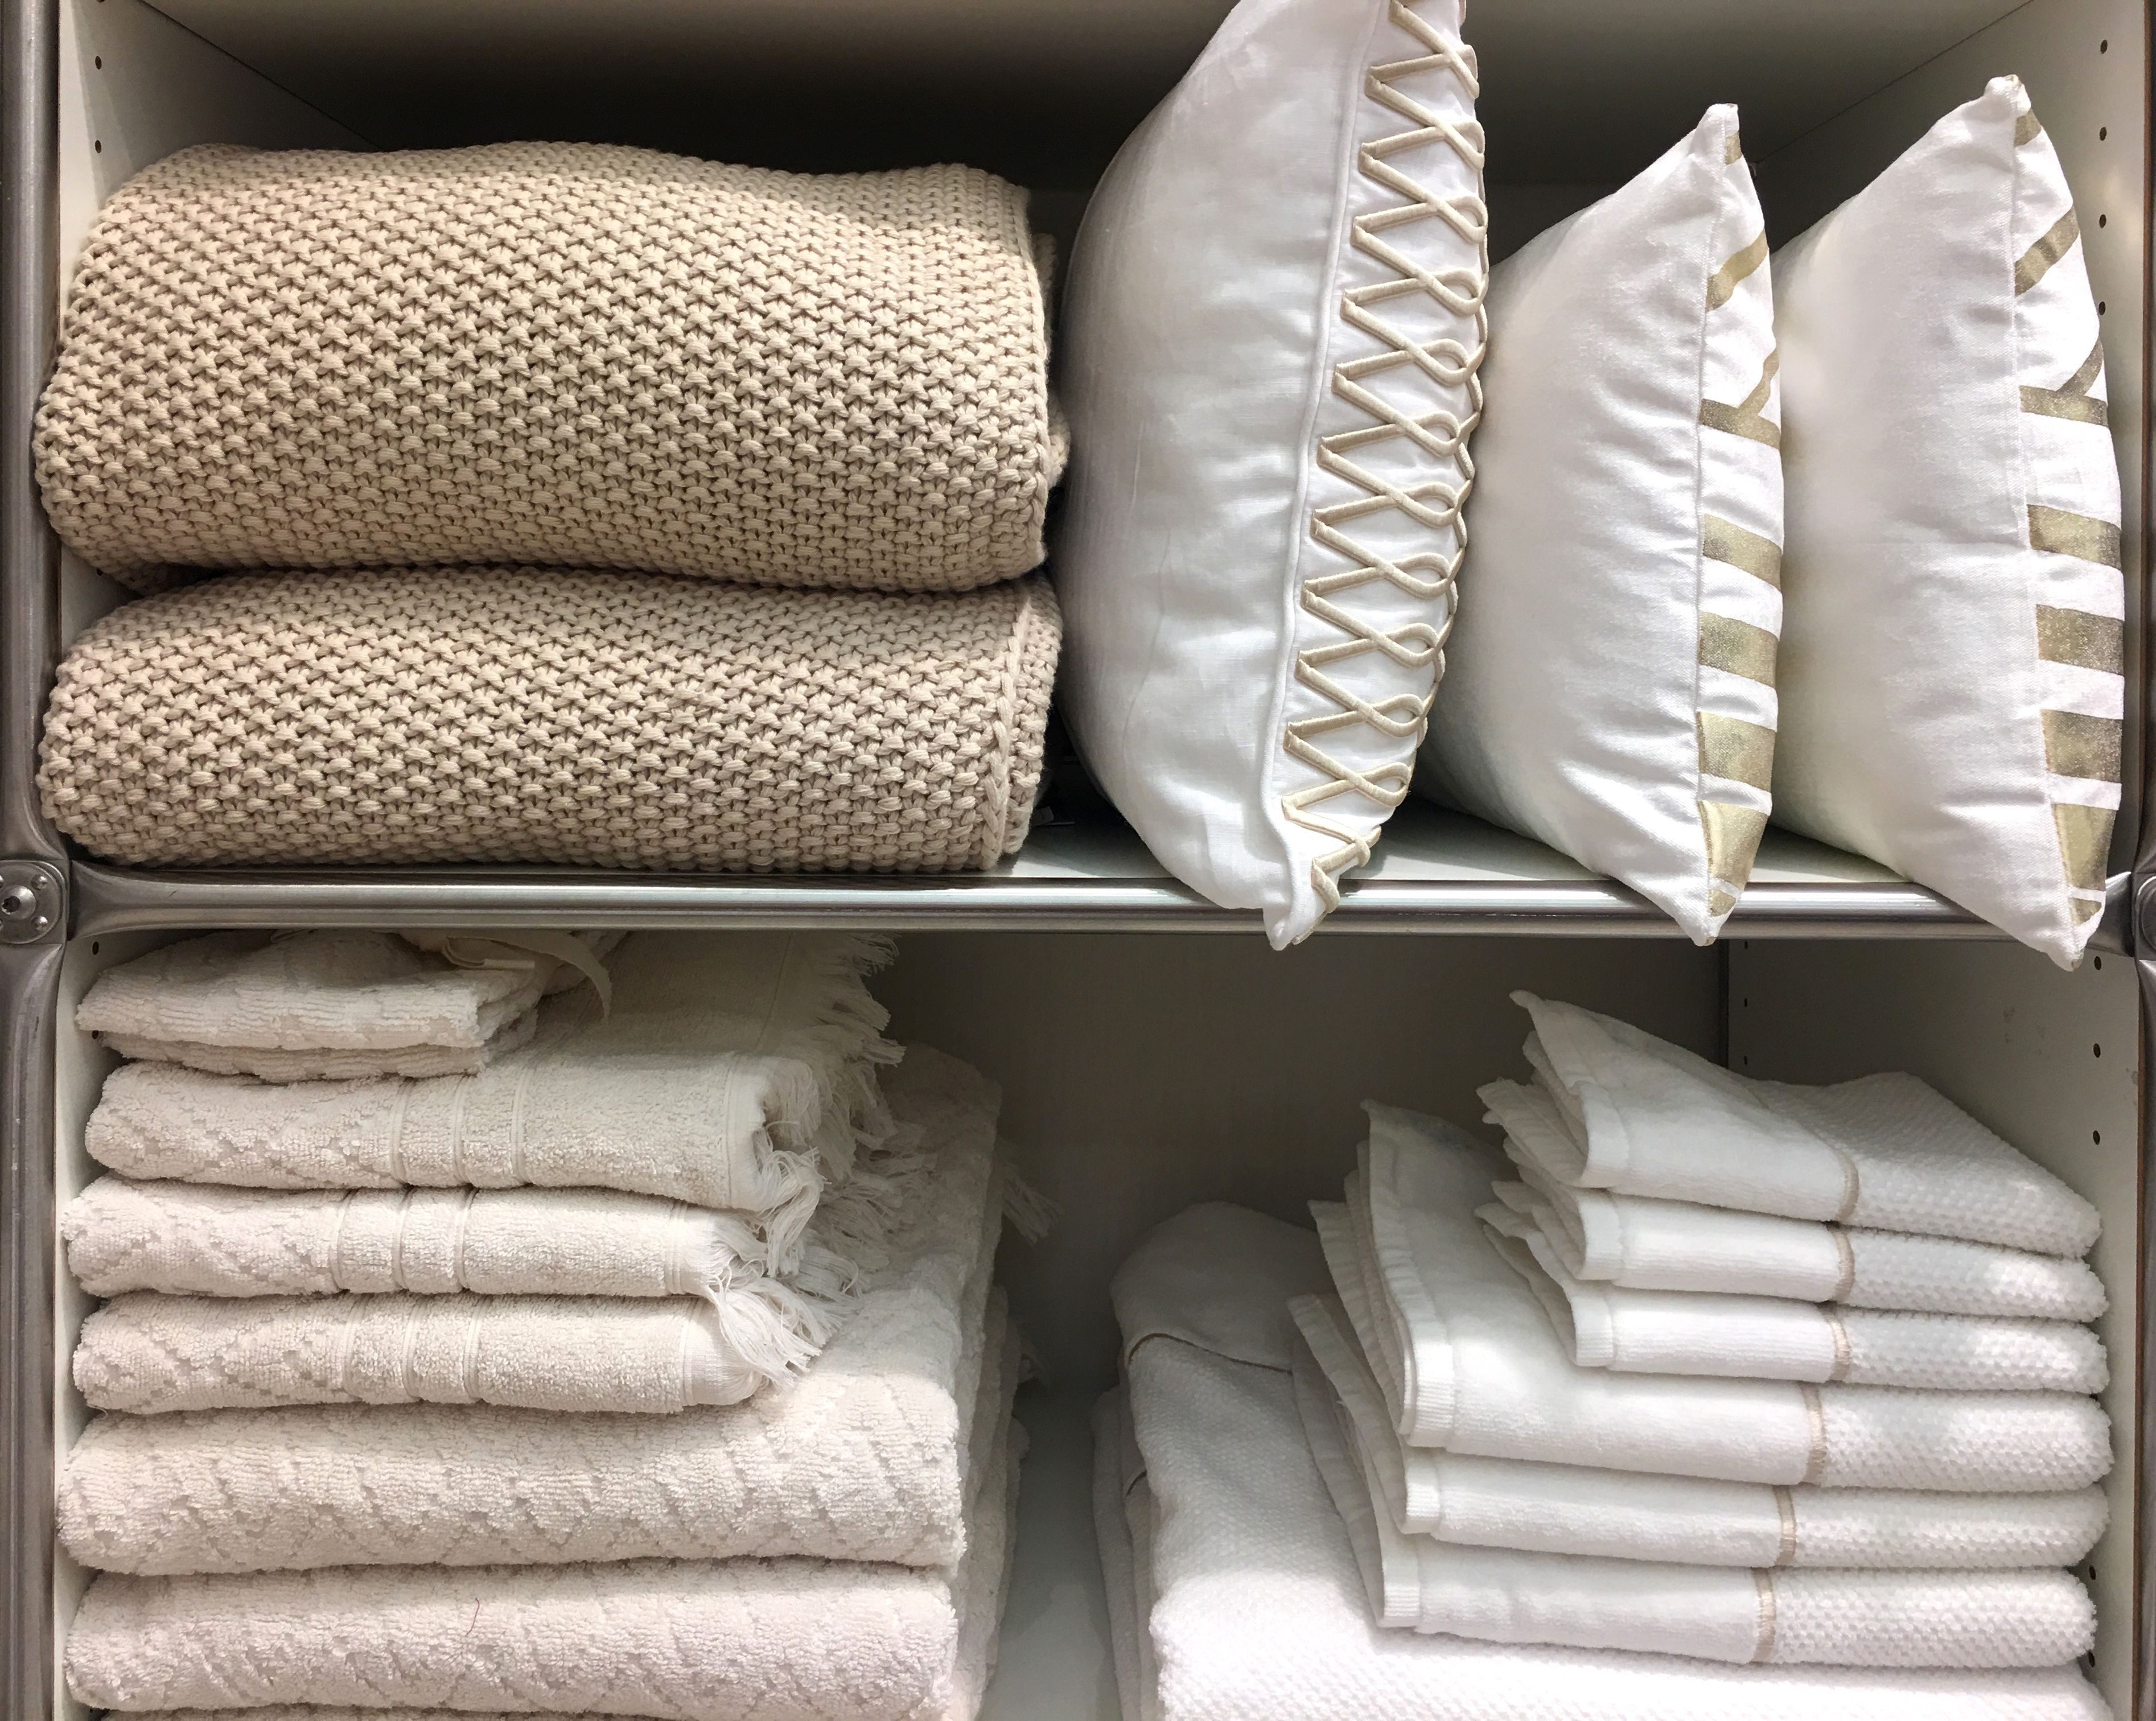 Various household items in closet